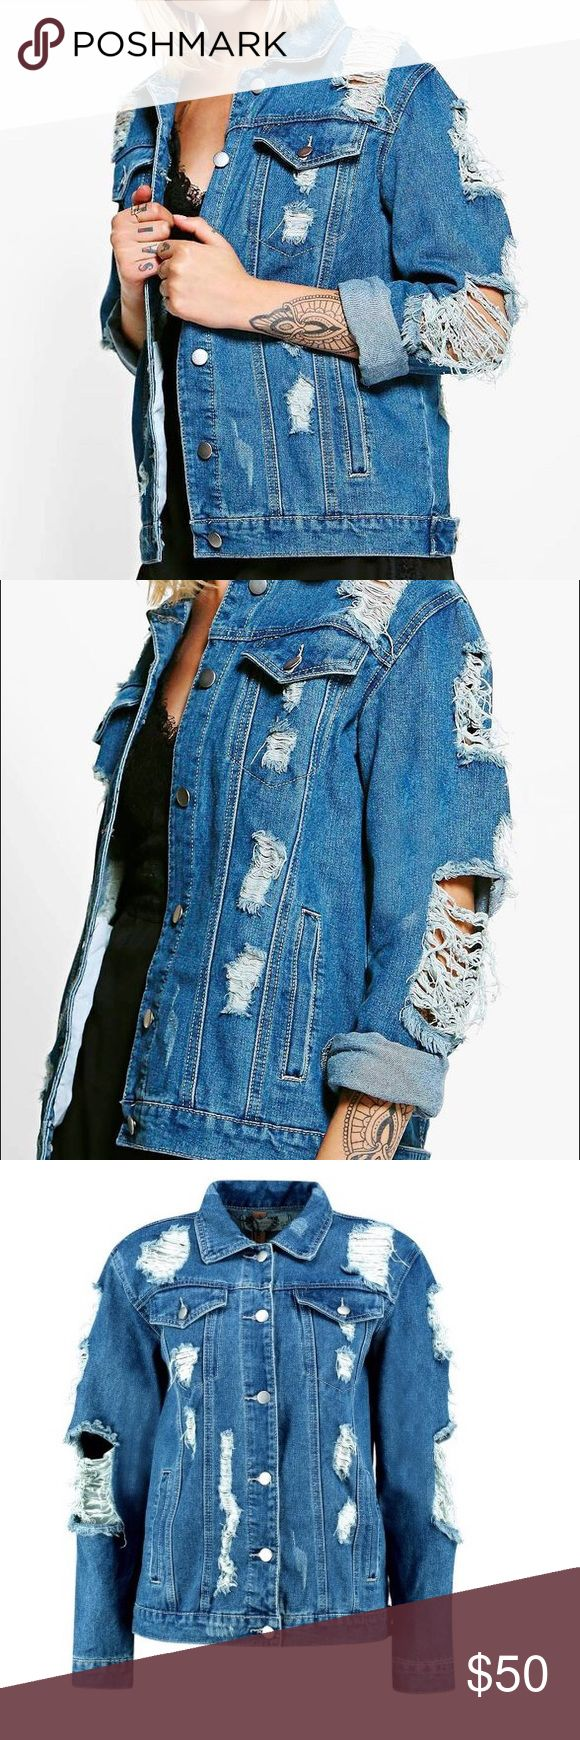 Distressed jean jacket NEW with out tags really cute distressed jean jacket! Jackets & Coats Jean Jackets